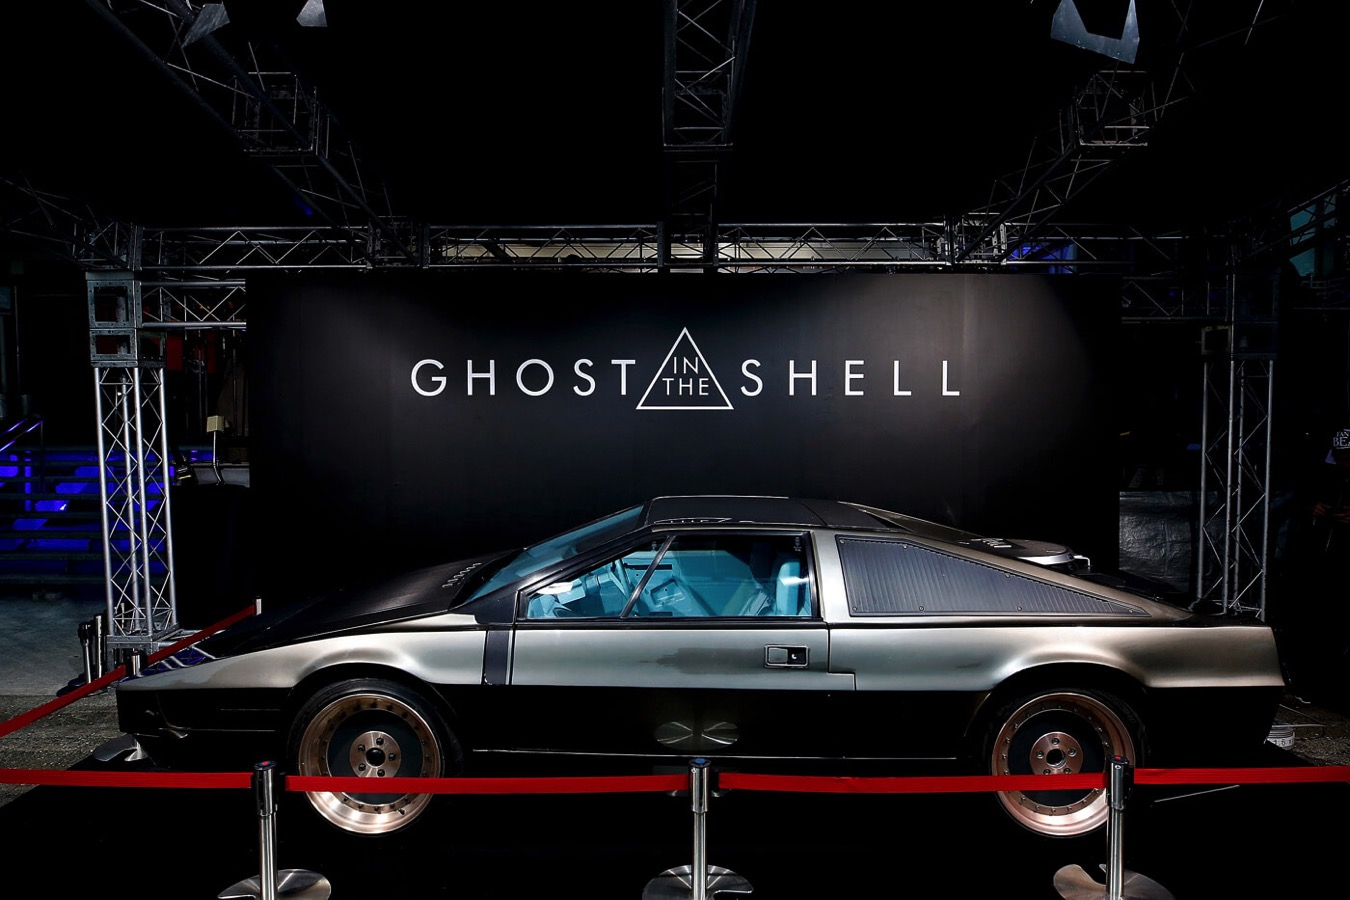 Ghost in the shell batou car copy